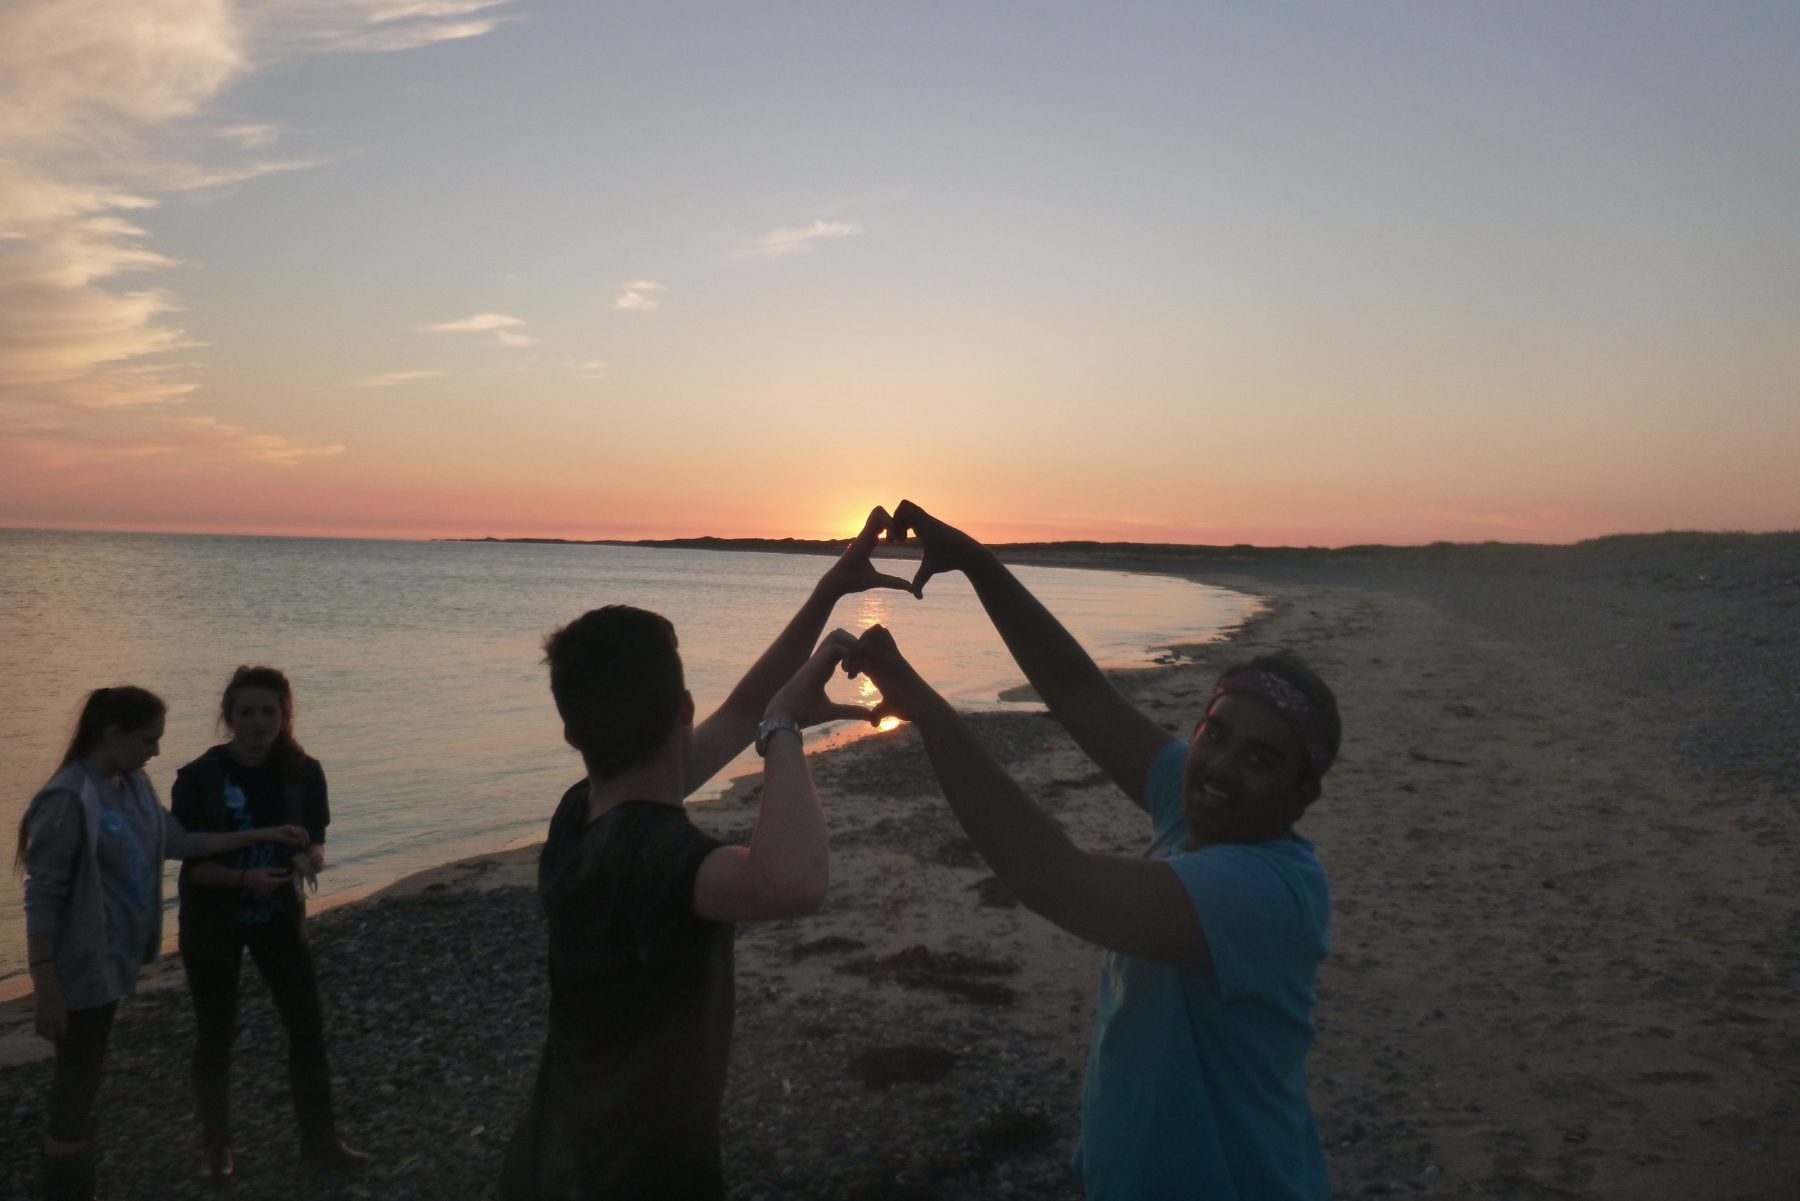 Sunset beach, team building, heart symbol